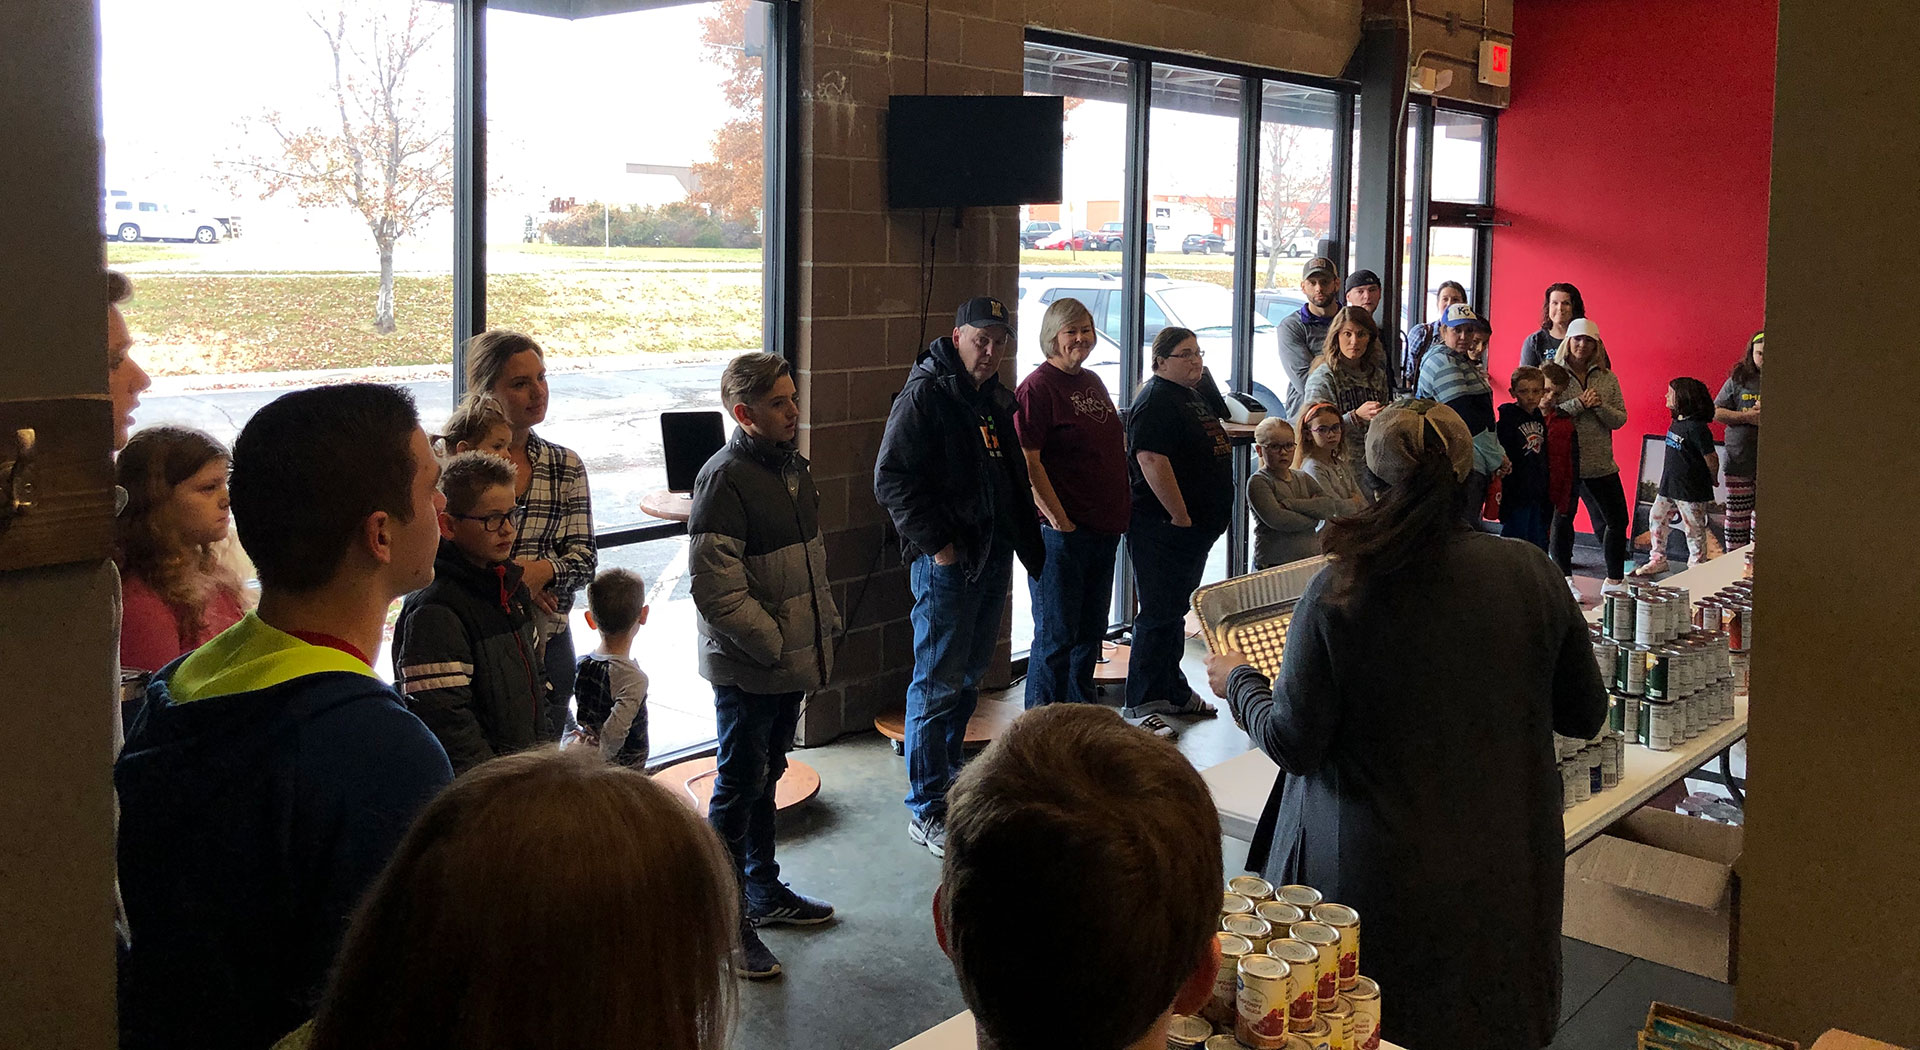 Thanksgiving Basket Outreach 2019 - Journey Church in Liberty, Missouri